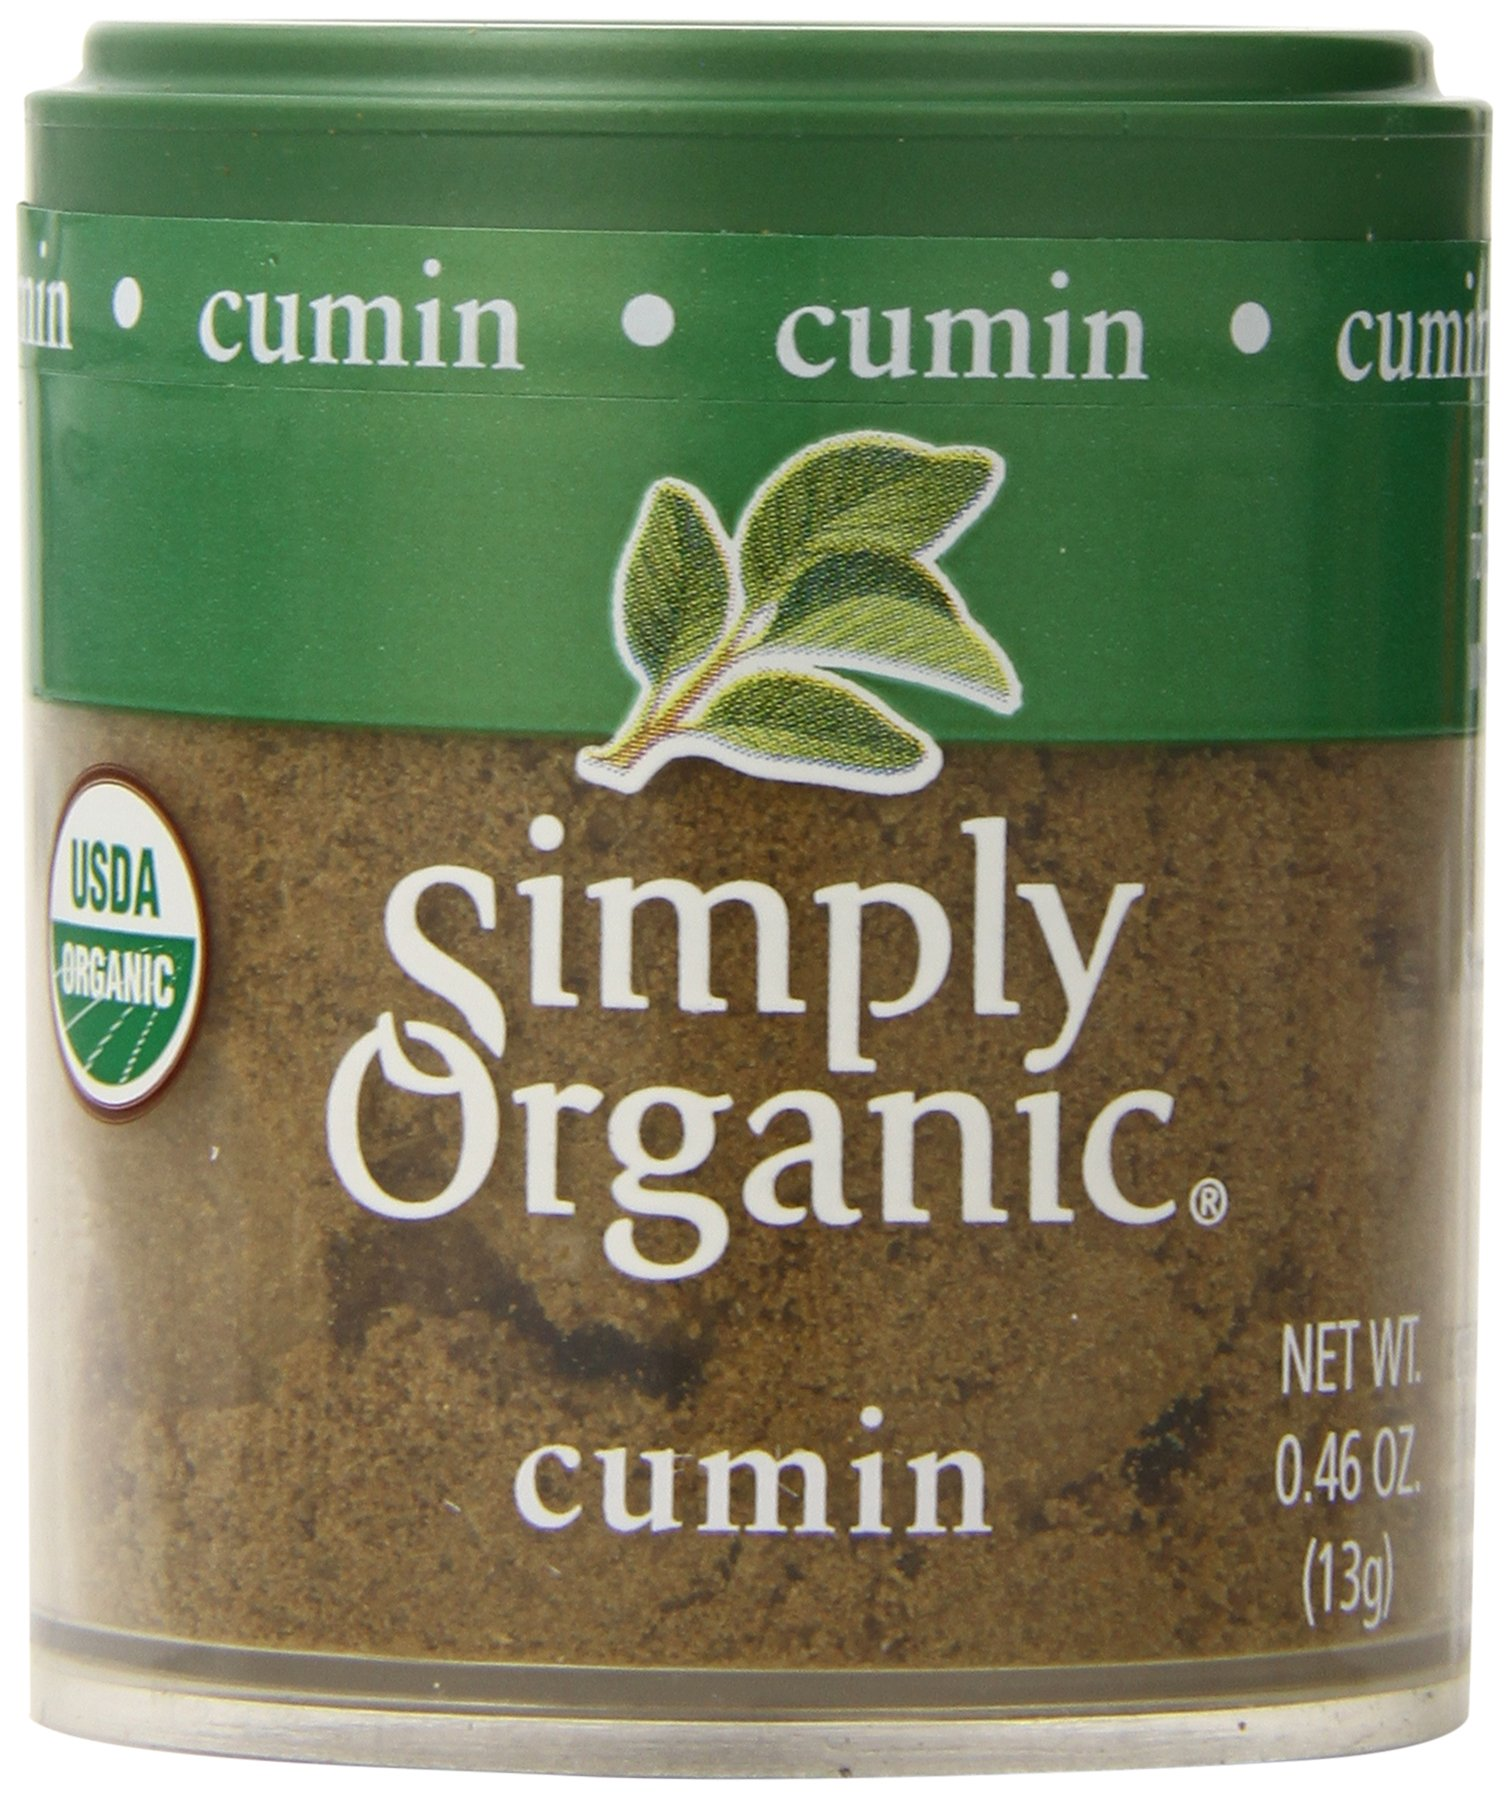 Simply Organic Cumin Seed Ground Certified Organic, 0.46-Ounce Containers (Pack of 6)